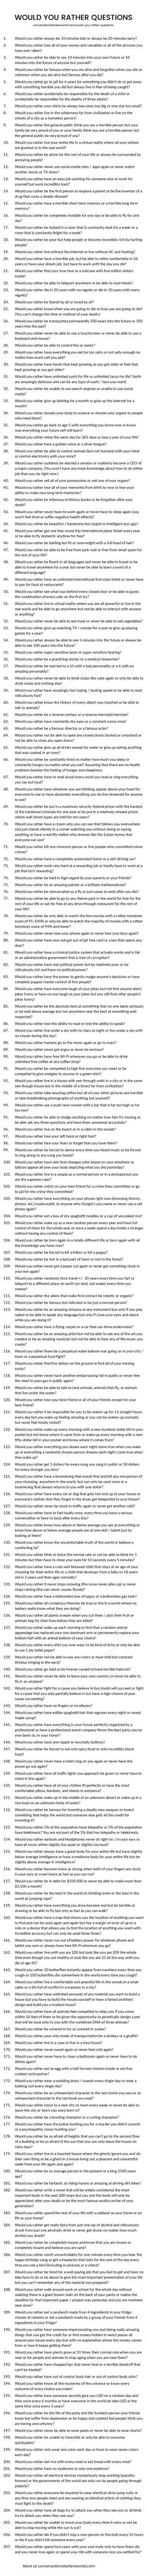 A seriously long list of would you rather questions!